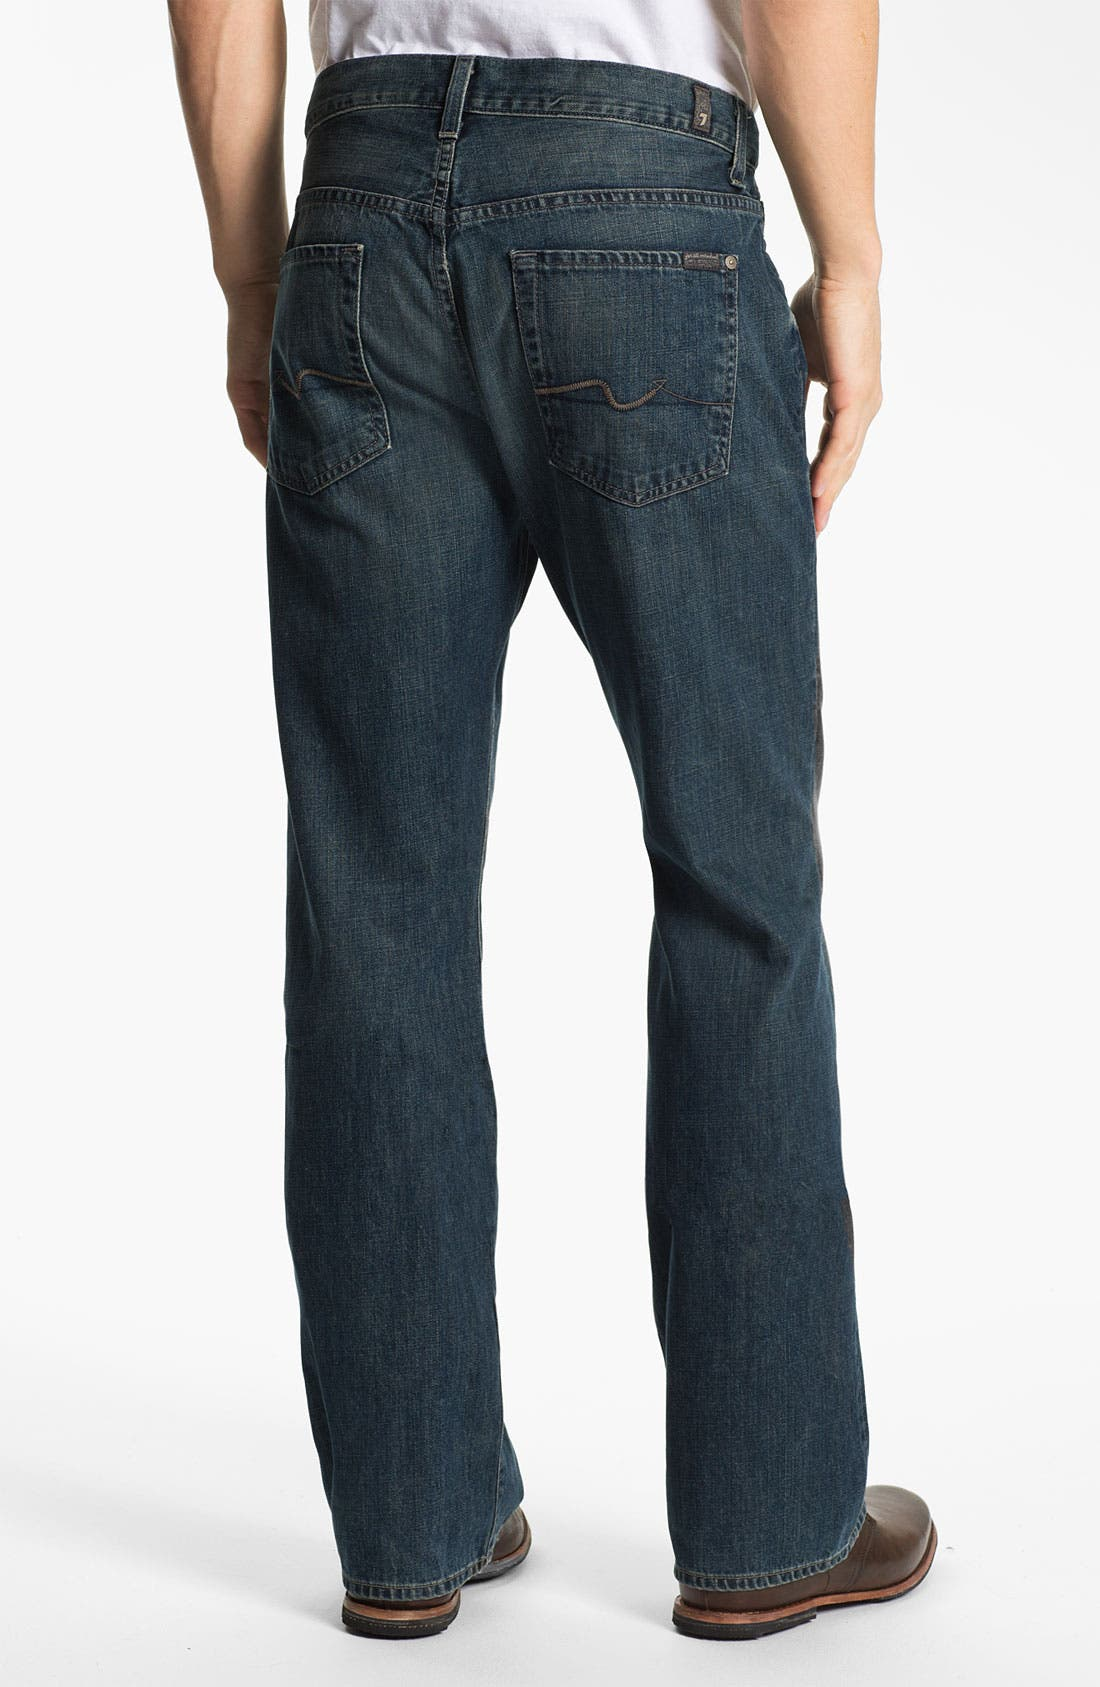 Main Image - 7 For All Mankind® 'Brett' Bootcut Jeans (Baring Bay) (Online Exclusive)